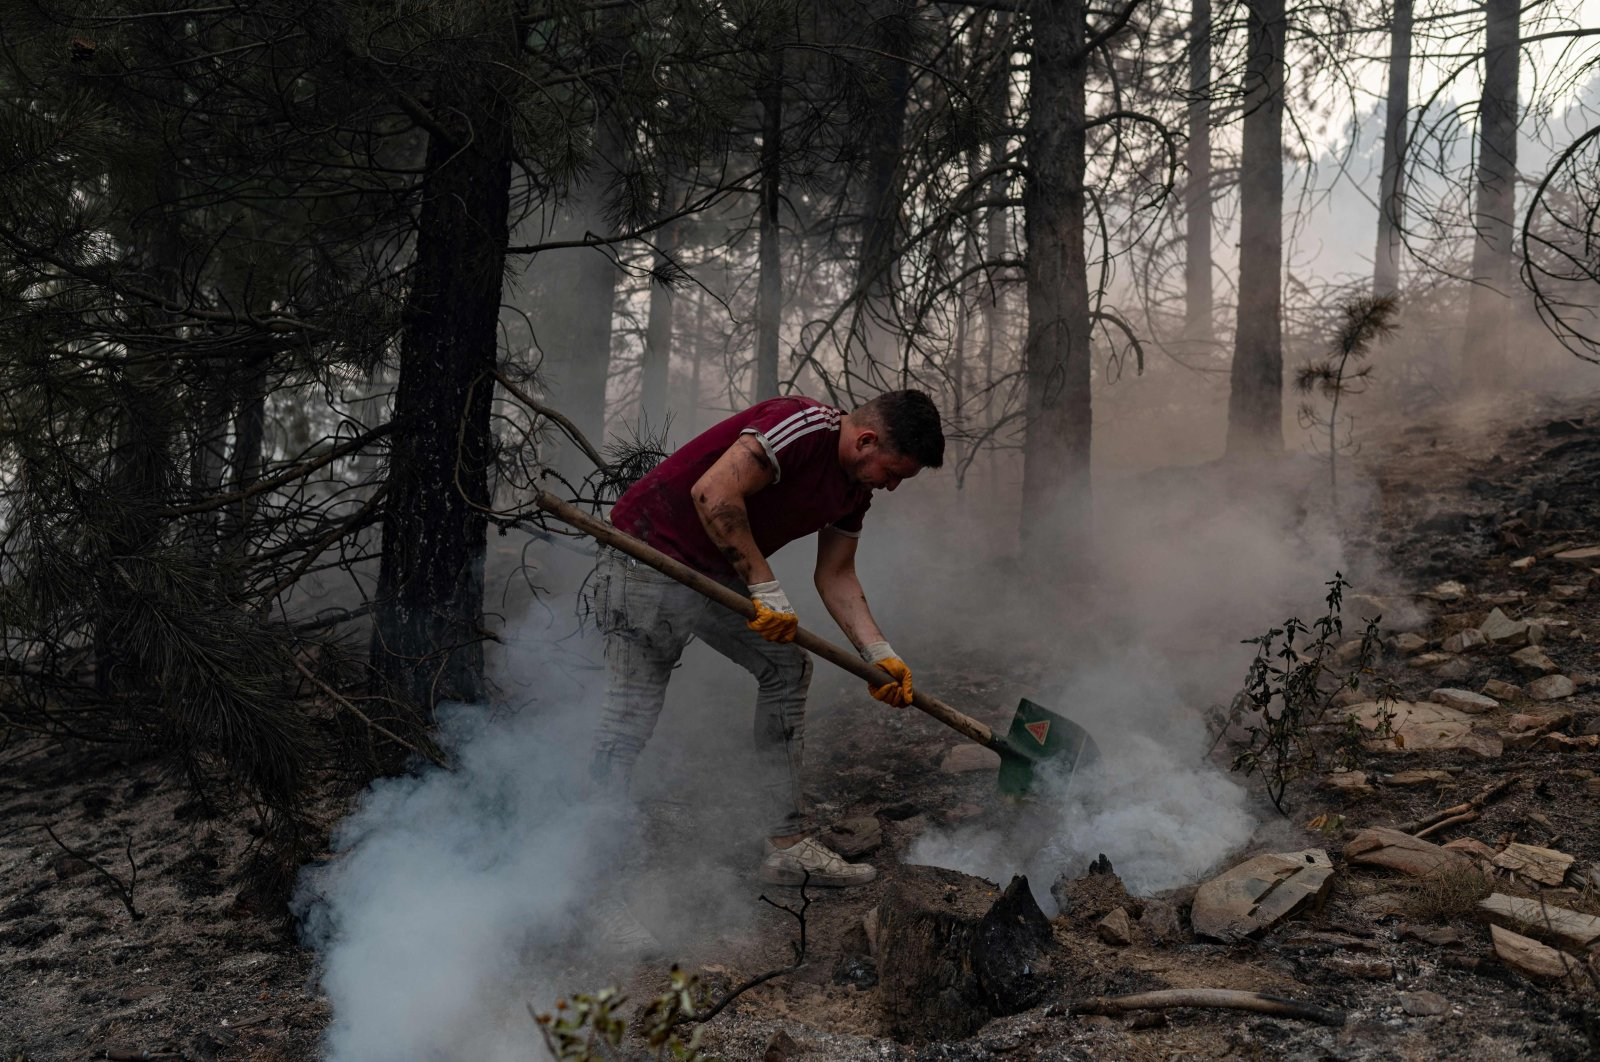 A volunteer from a nearby village uses a shovel to help contain smouldering forest fires in the hills of a recently burnt area near Kavaklıdere, a town in Muğla province, Turkey, Aug. 5, 2021. (AFP Photo)